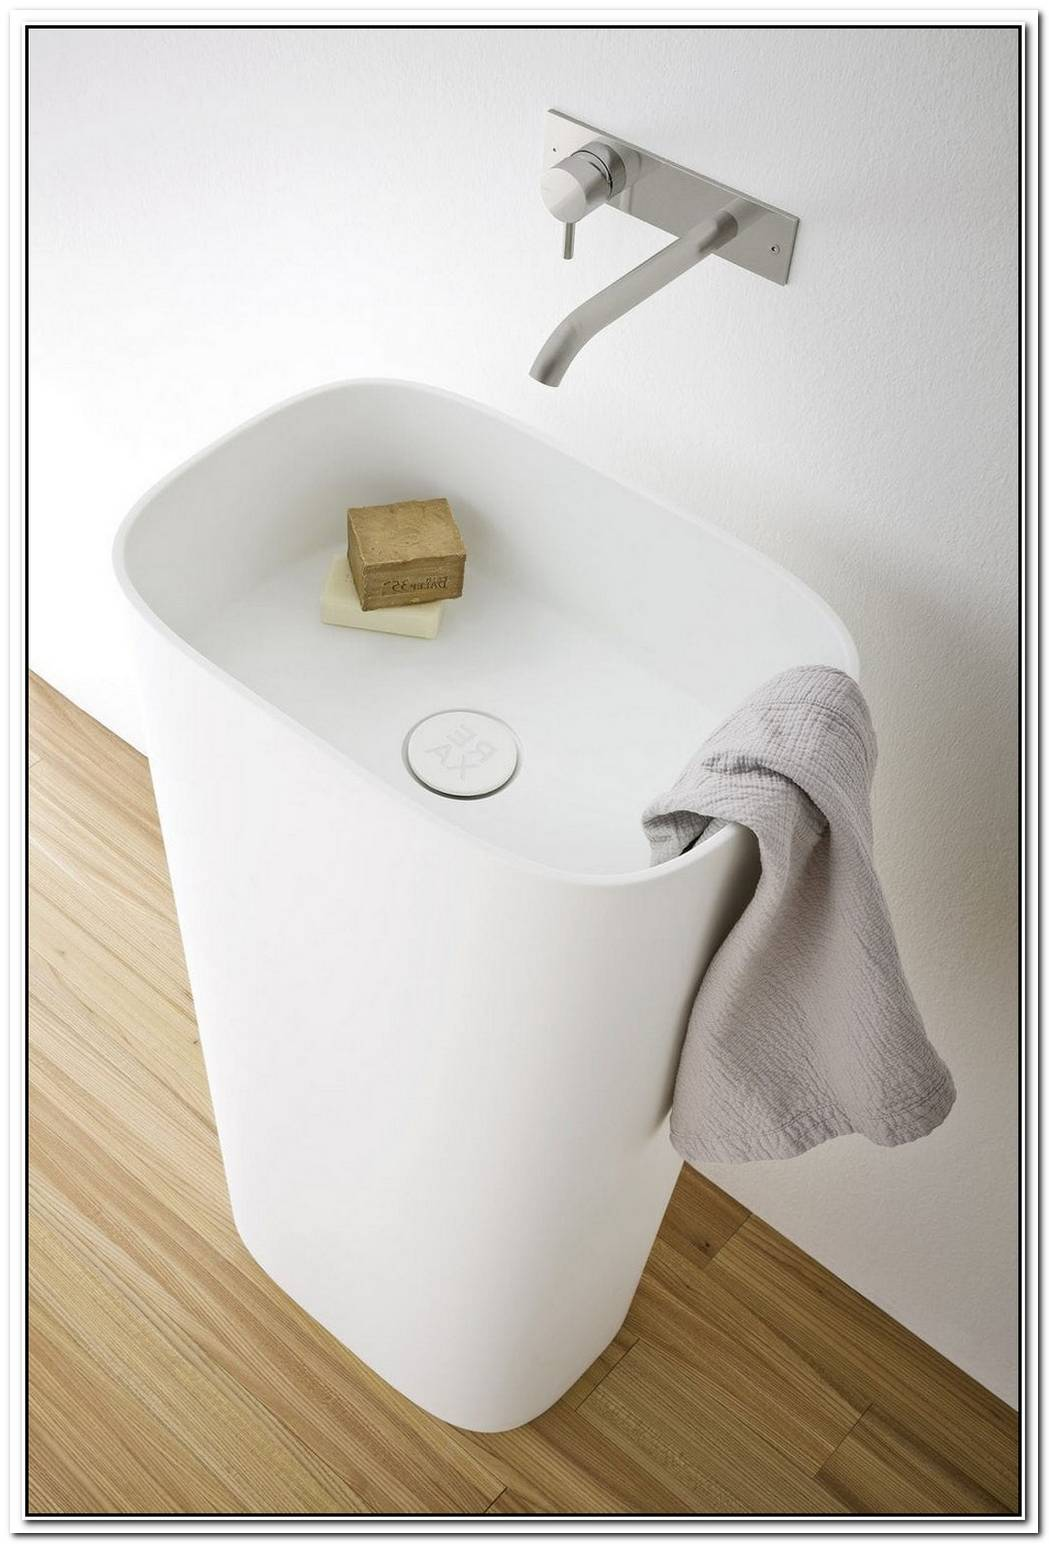 The Fonte Freestanding Washbasin By Monica Graffeo